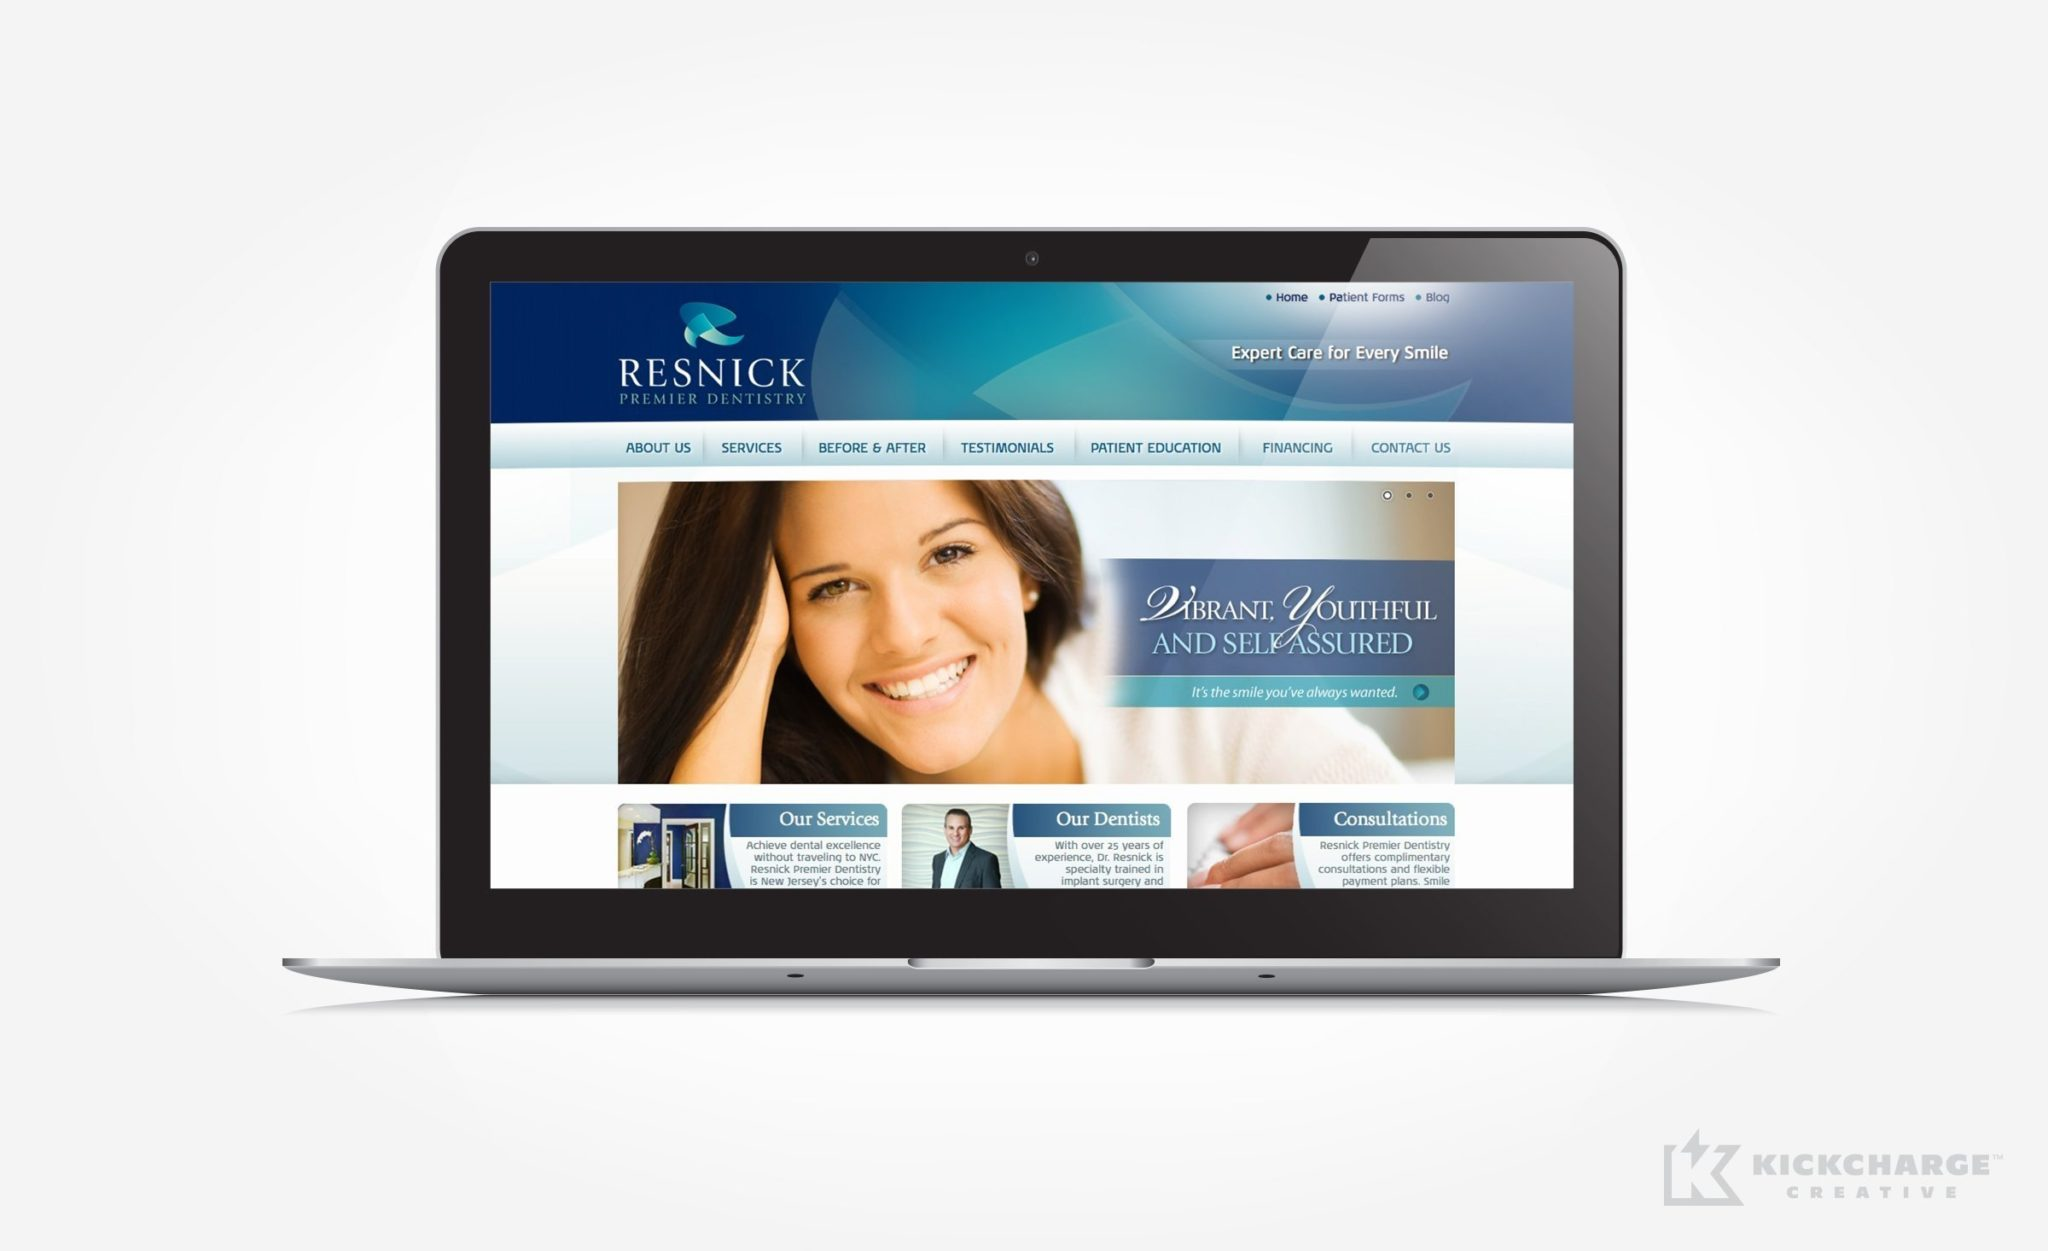 Web design for an upscale dental practice in Franklin Lakes, NJ.